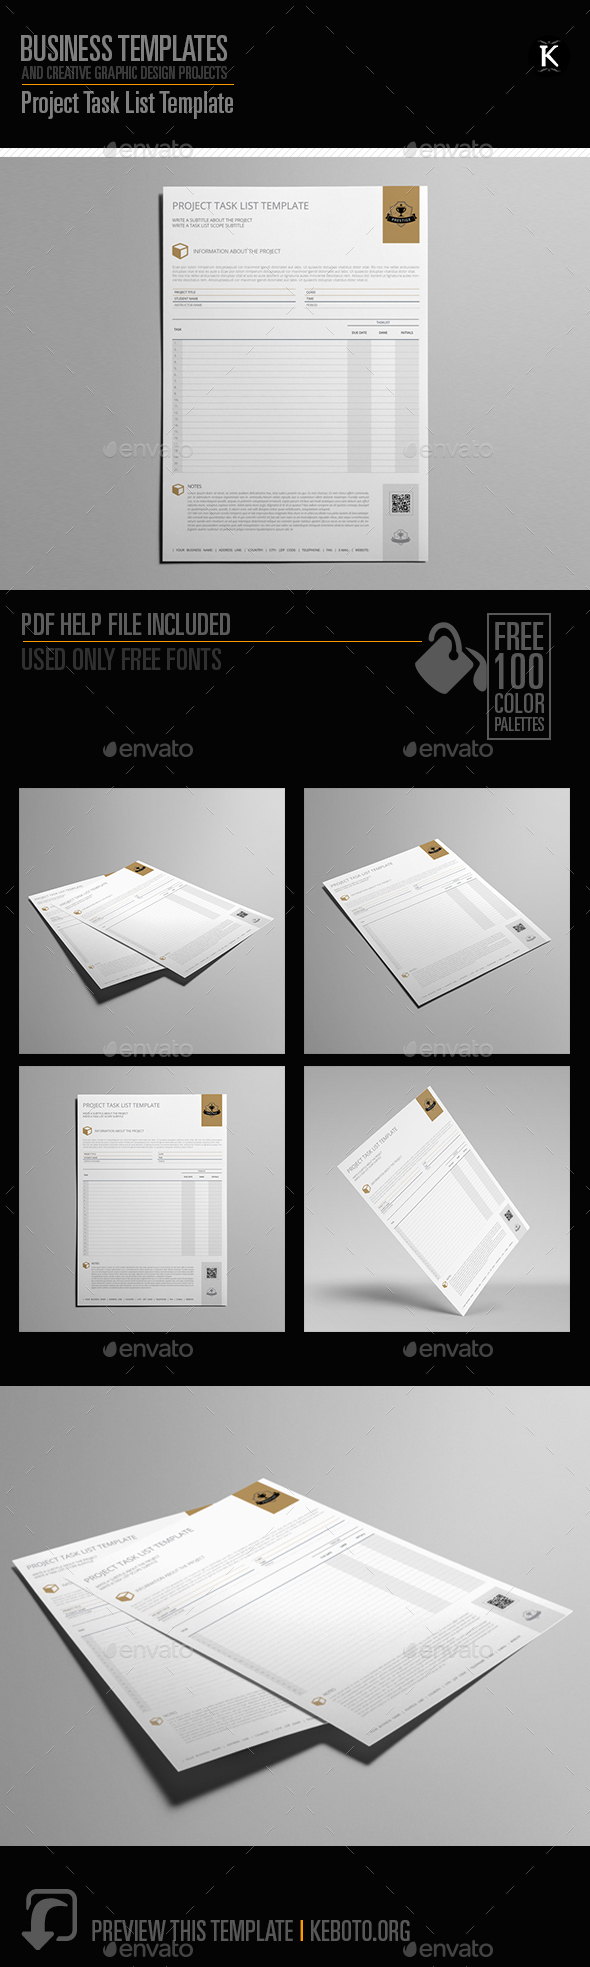 project task list template by keboto graphicriver. Black Bedroom Furniture Sets. Home Design Ideas